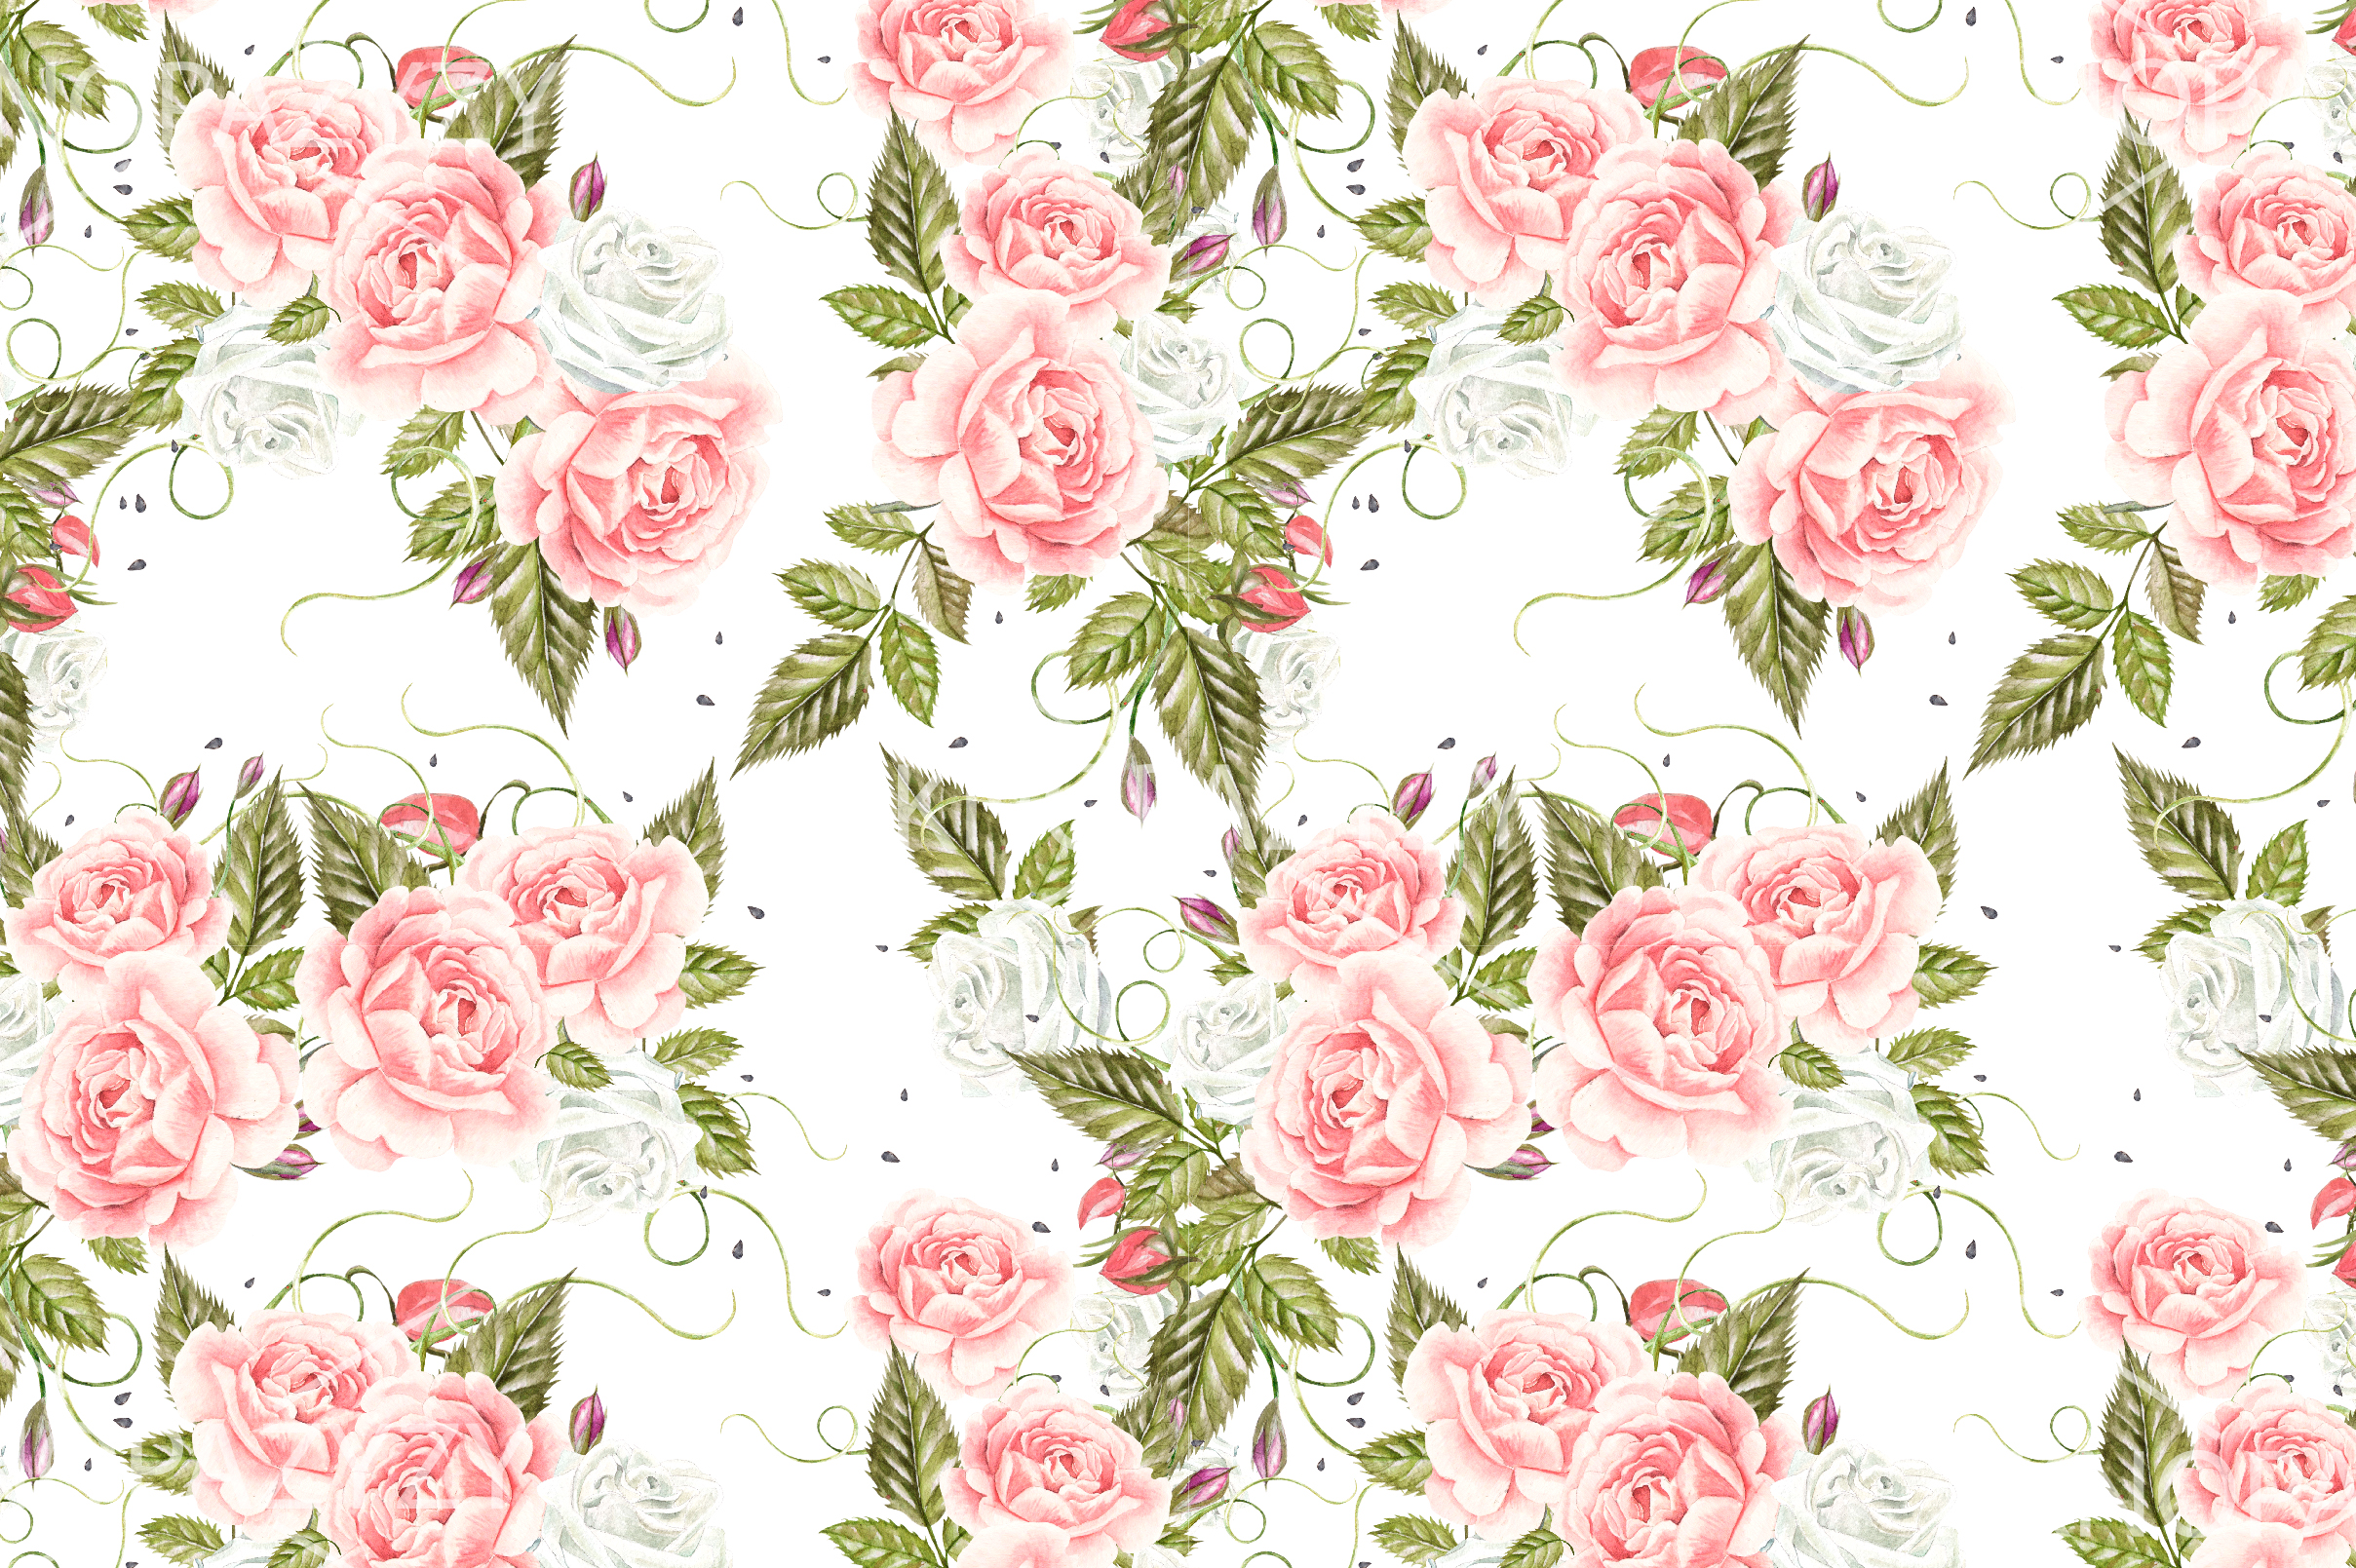 15 Hand Drawn Watercolor PATTERNS example image 12